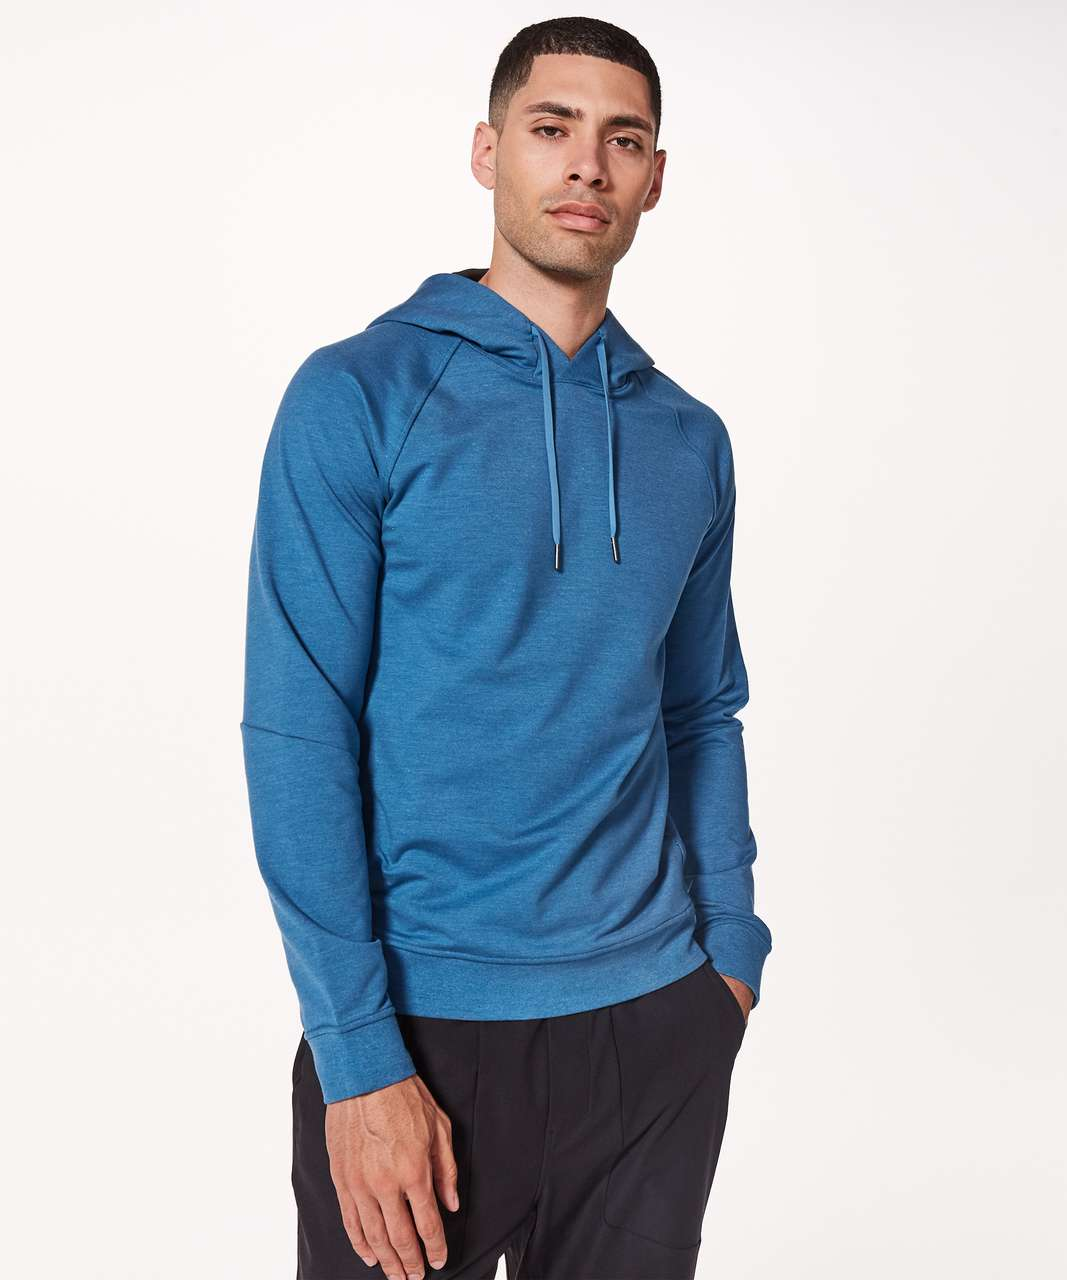 Lululemon City Sweat Pullover Hoodie - Heathered Pewter Blue